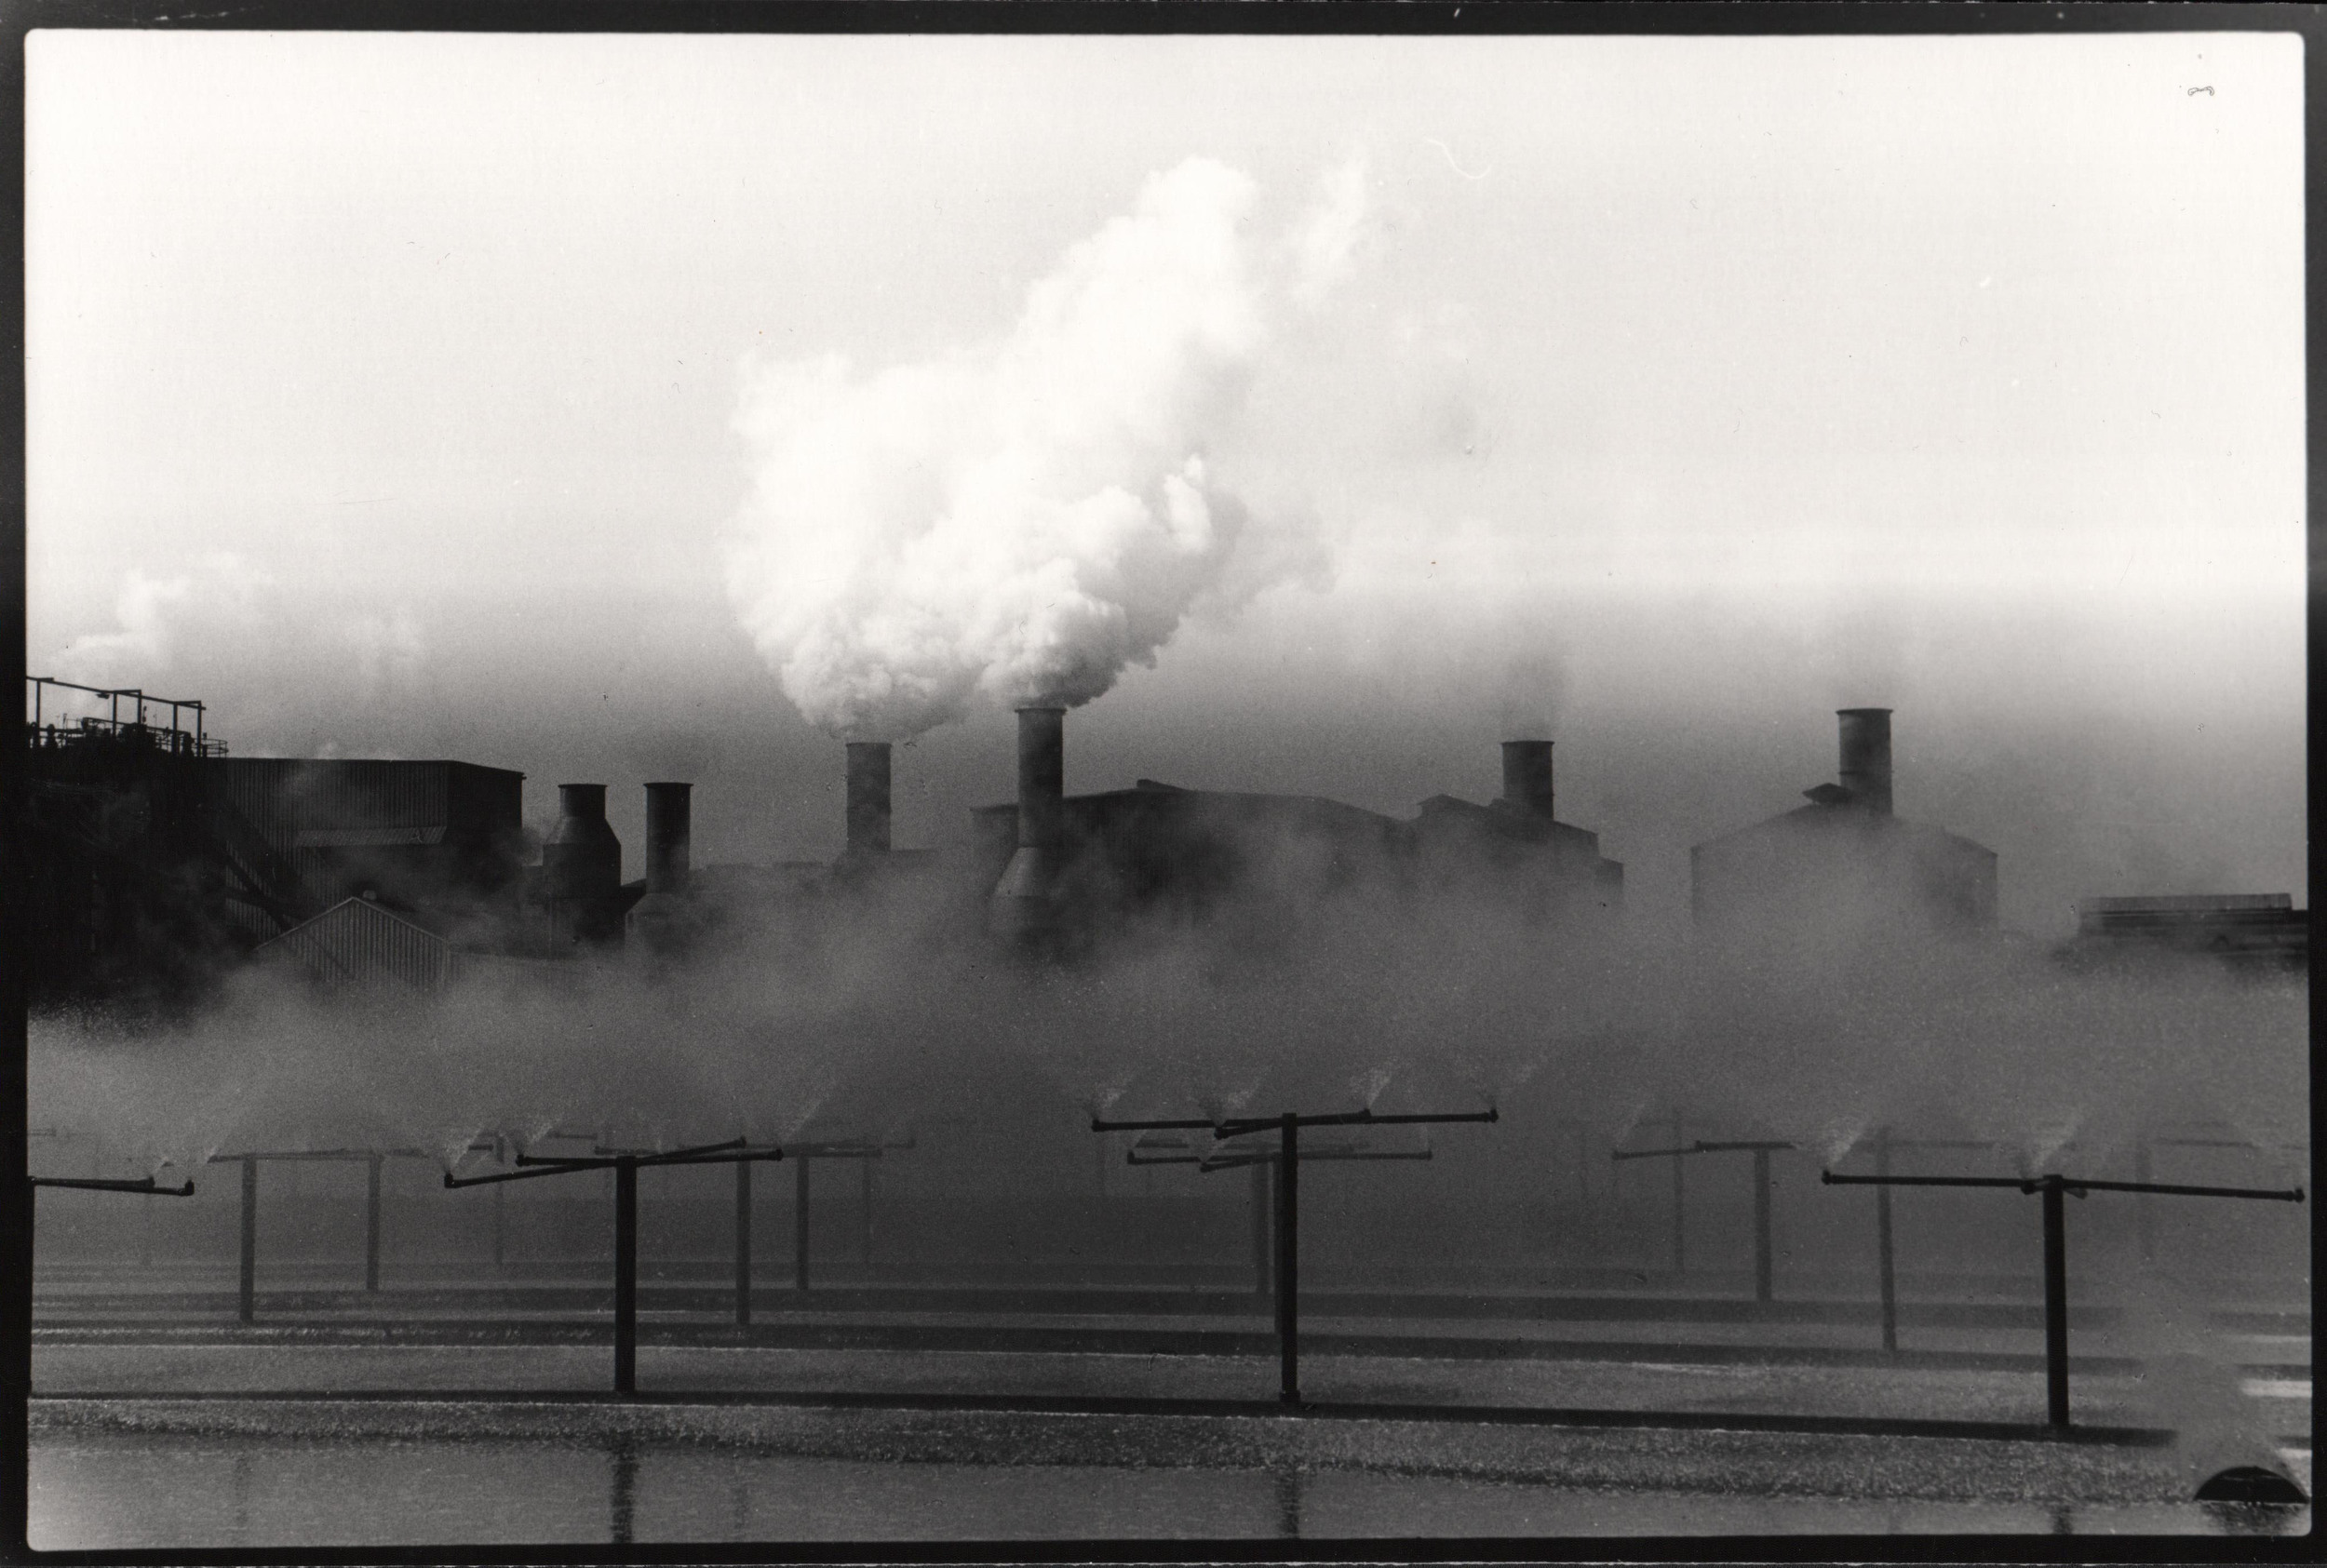 factory and steam2.jpg